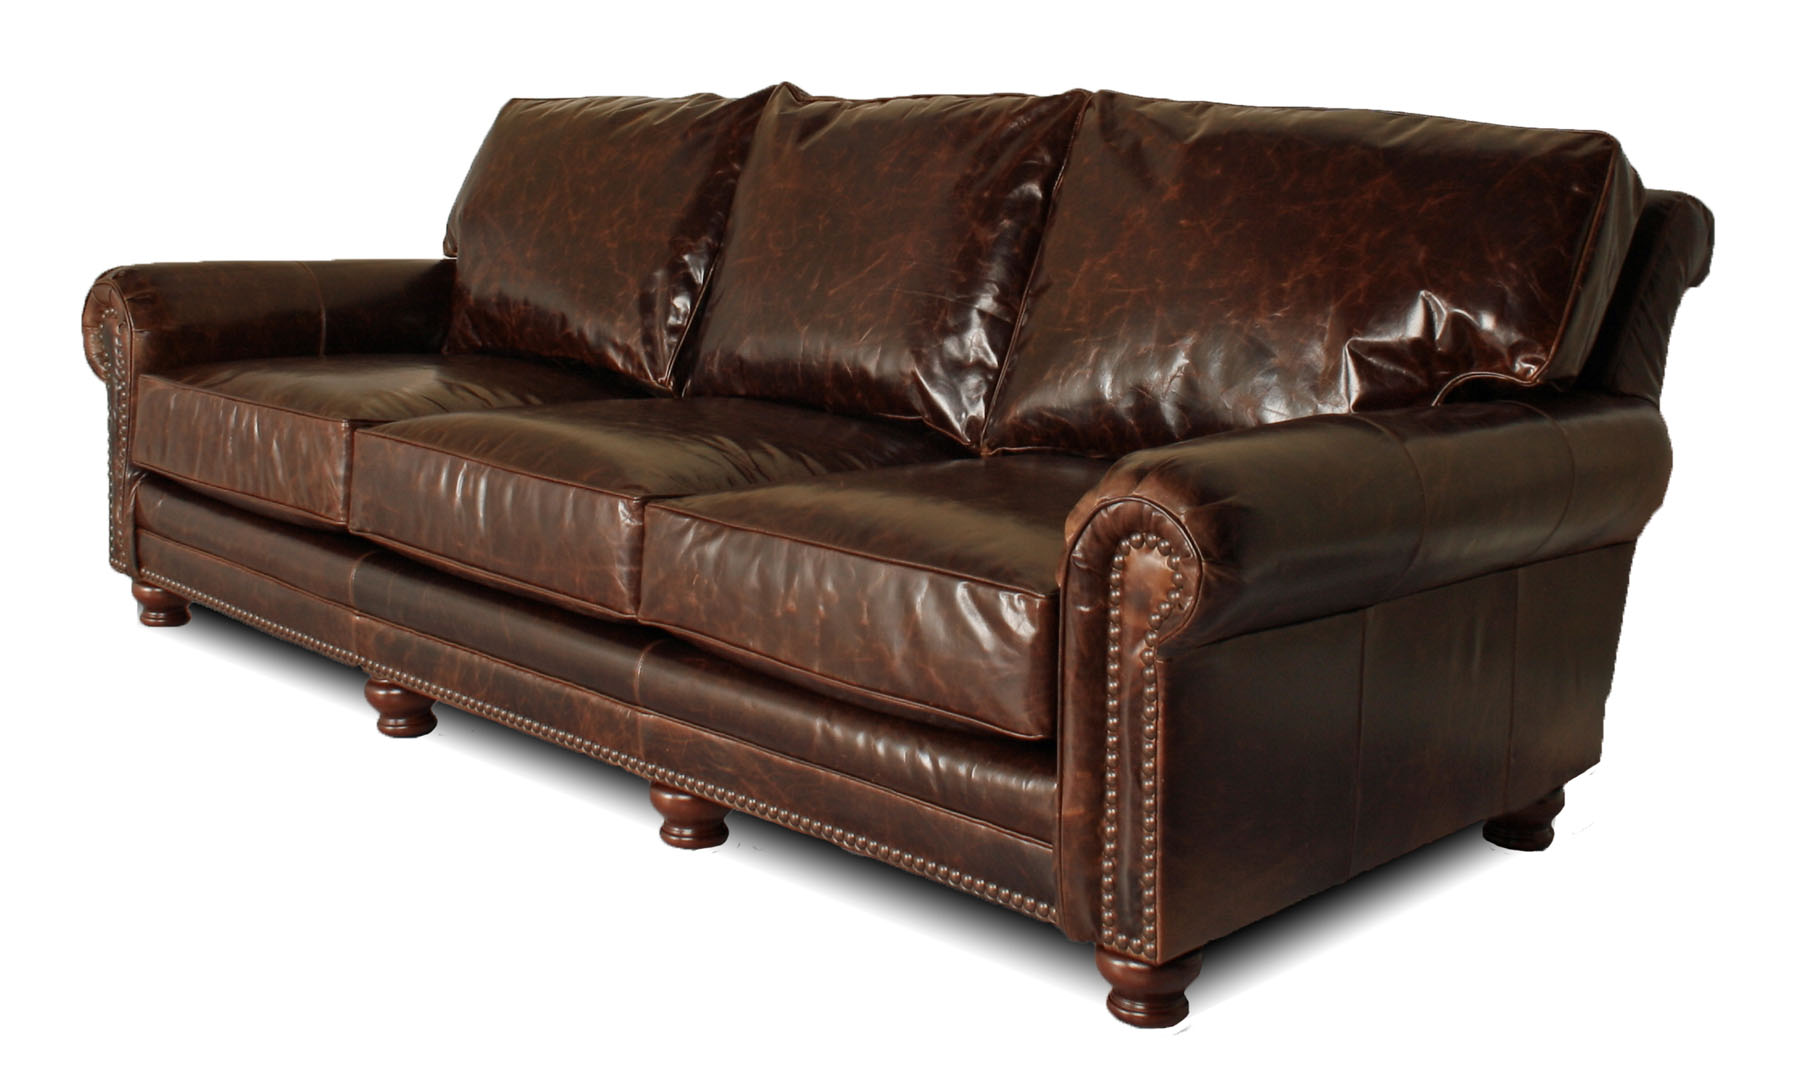 Kingston deep leather furniture for Com furniture